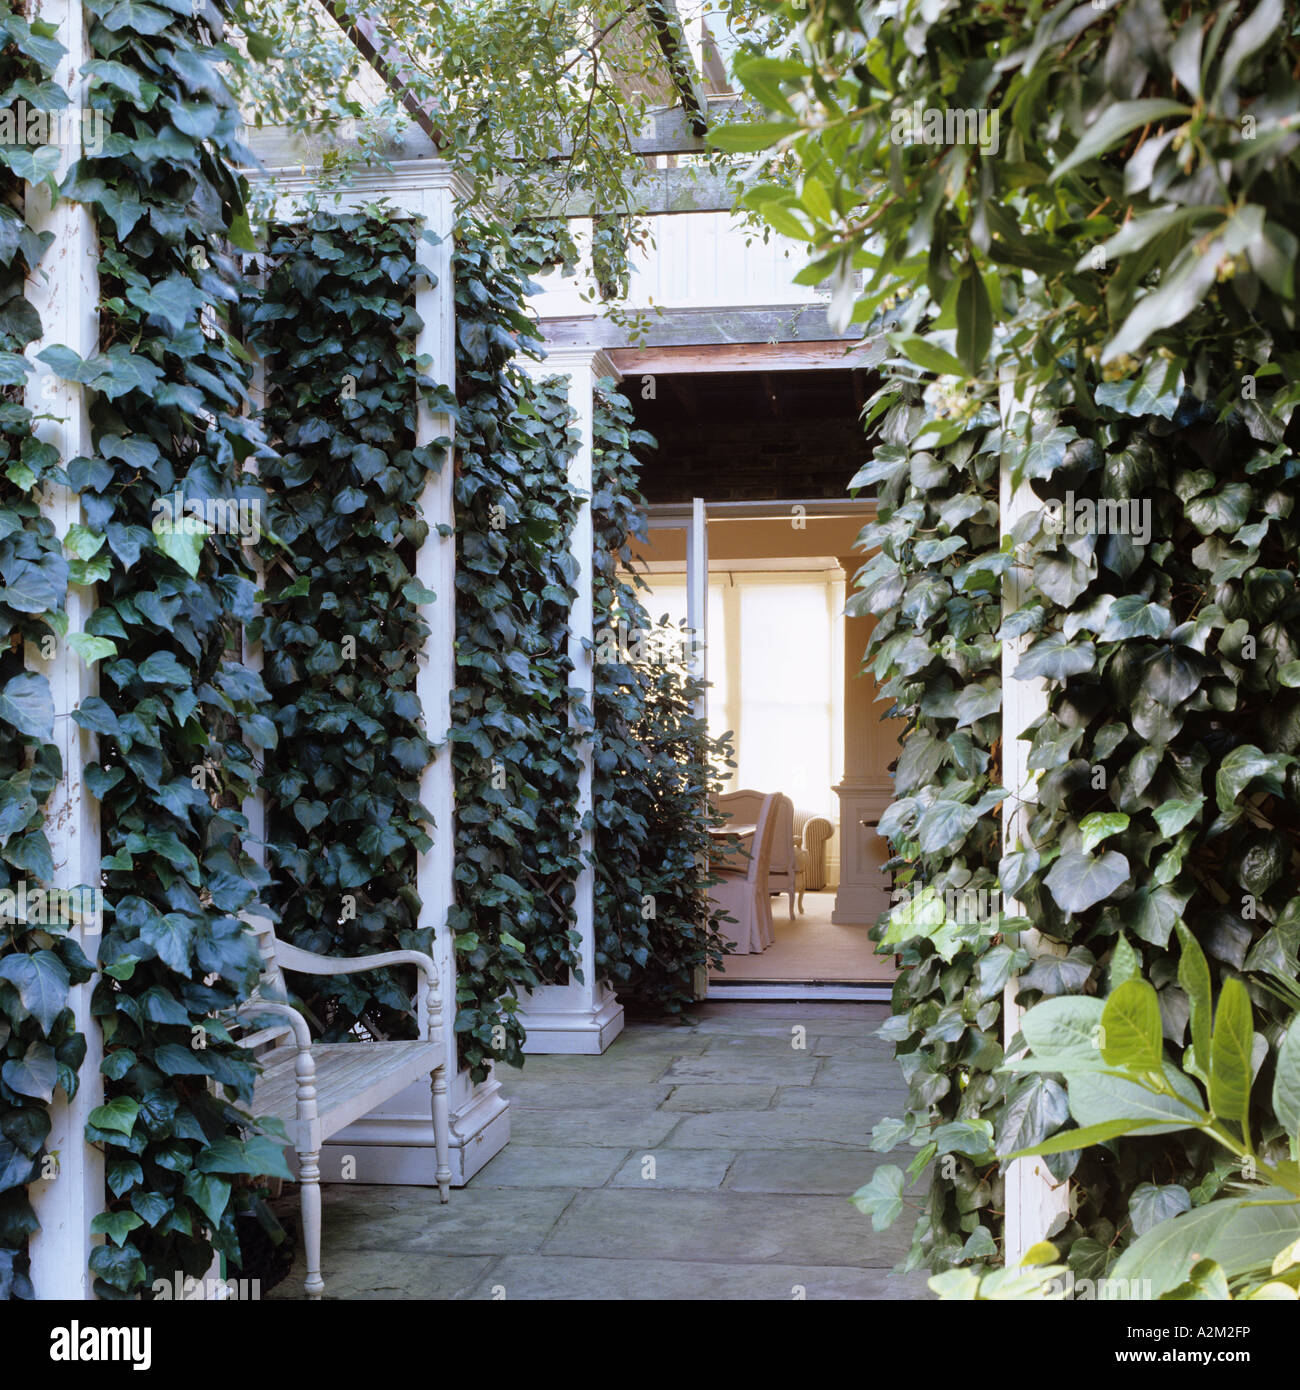 Paved courtyard with ivy covered trellis/ arbor Stock Photo   Alamy